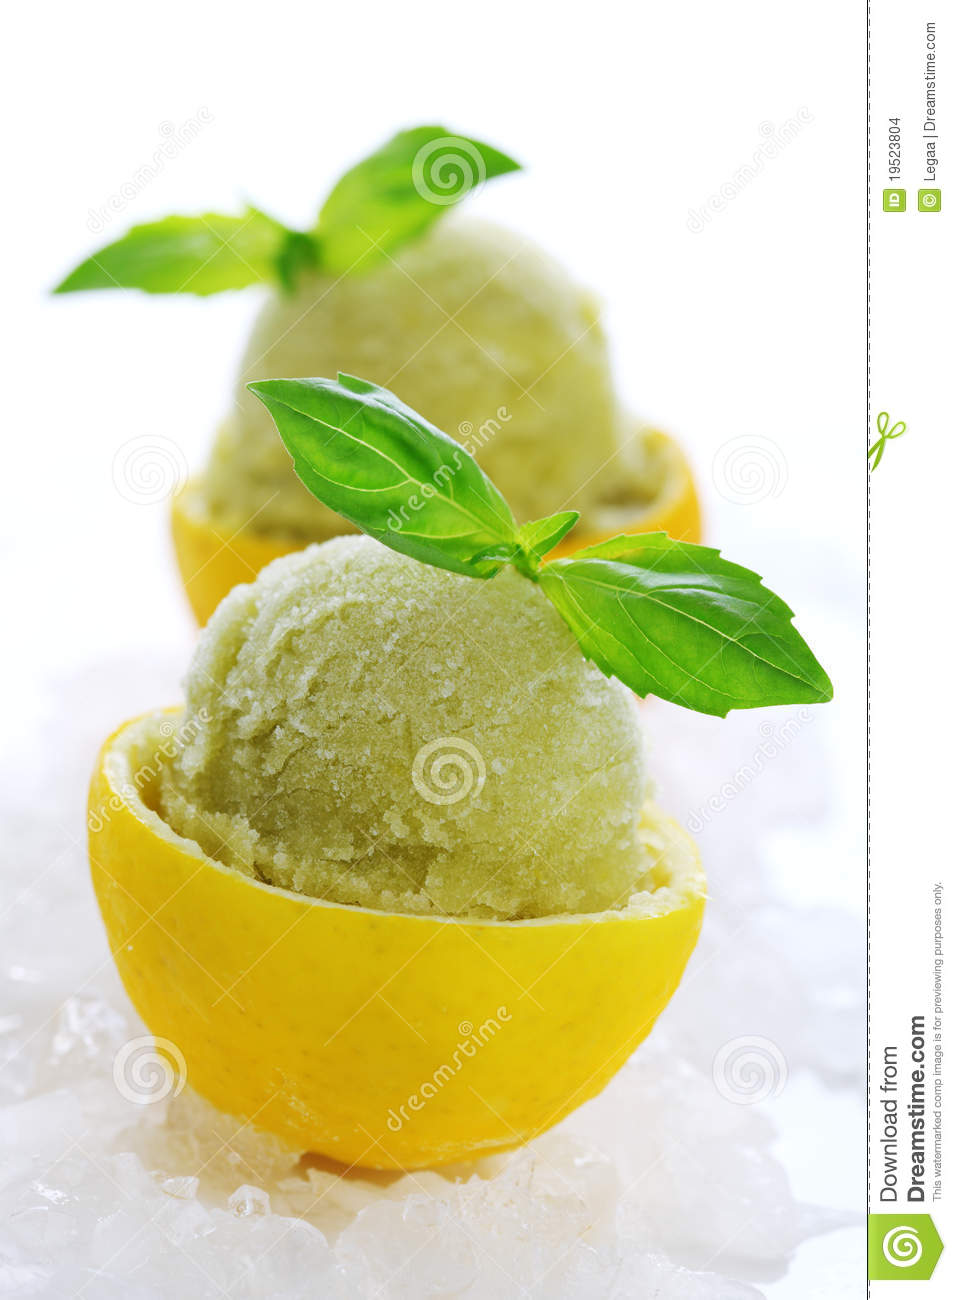 Lemon- basil sorbet in cups of lemon on white isolated background.